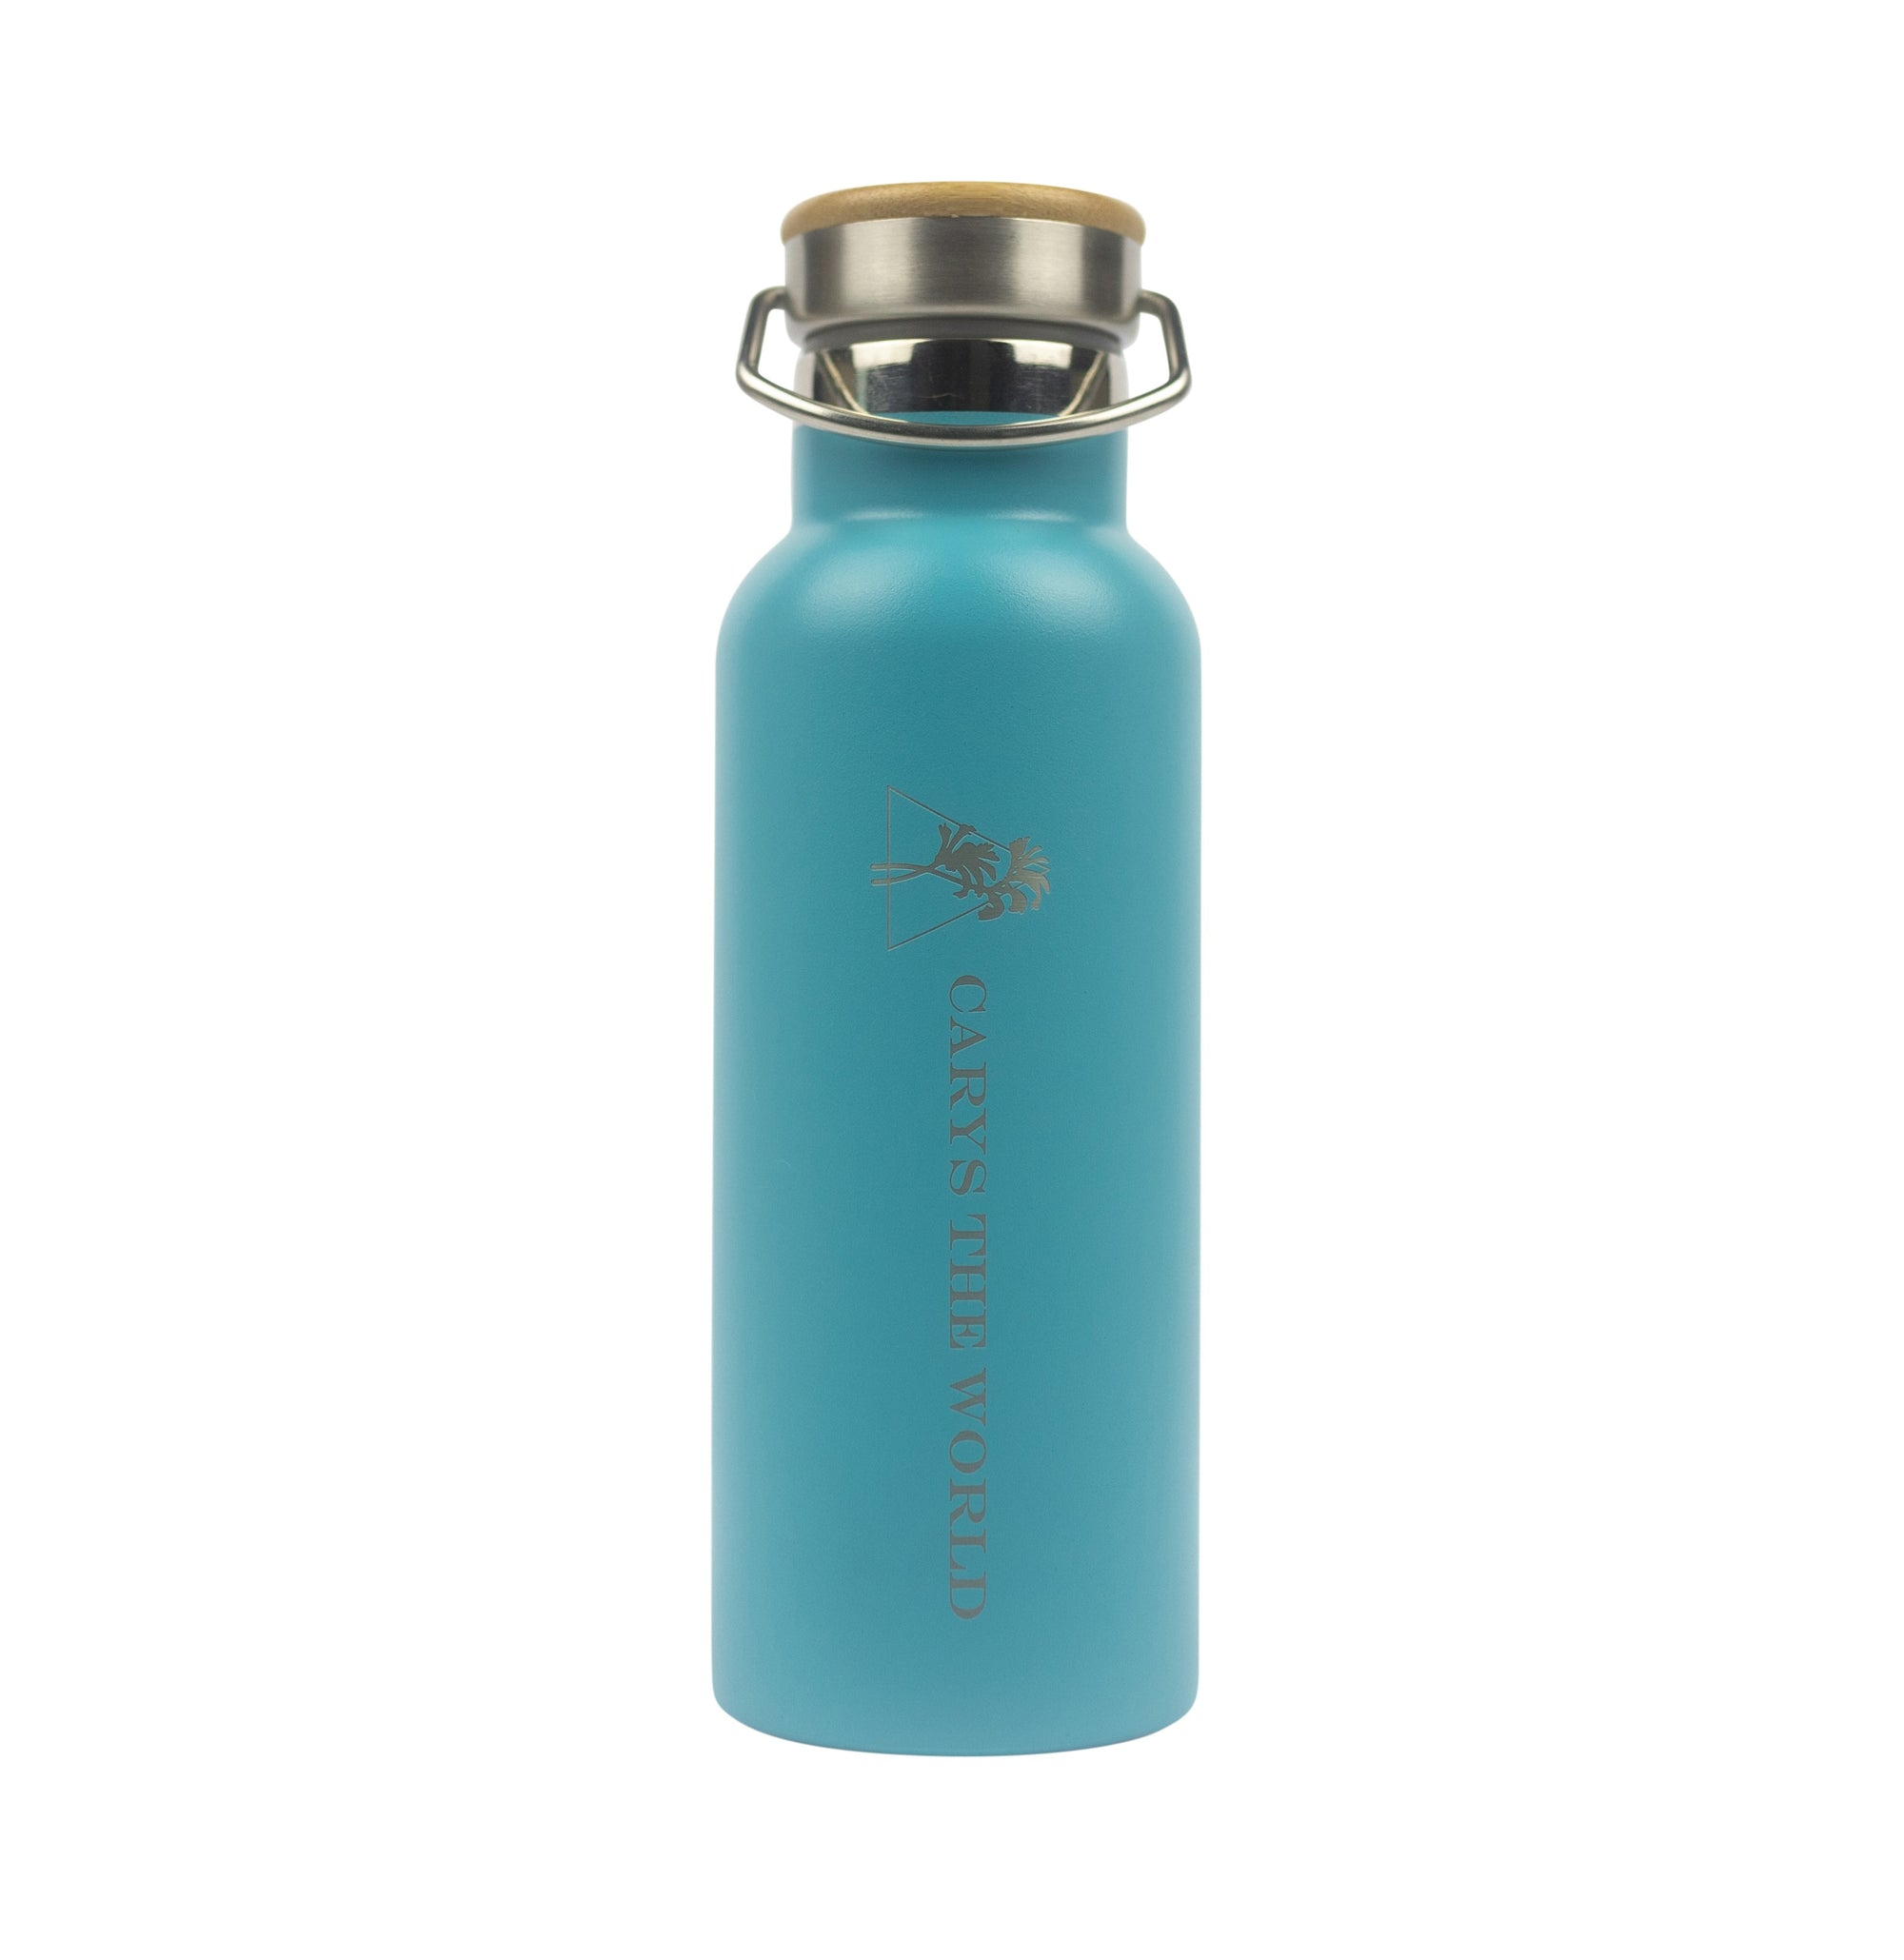 500ML Stainless Steel Drink Bottle Aqua - Carys The World Bamboo Bottle Brush